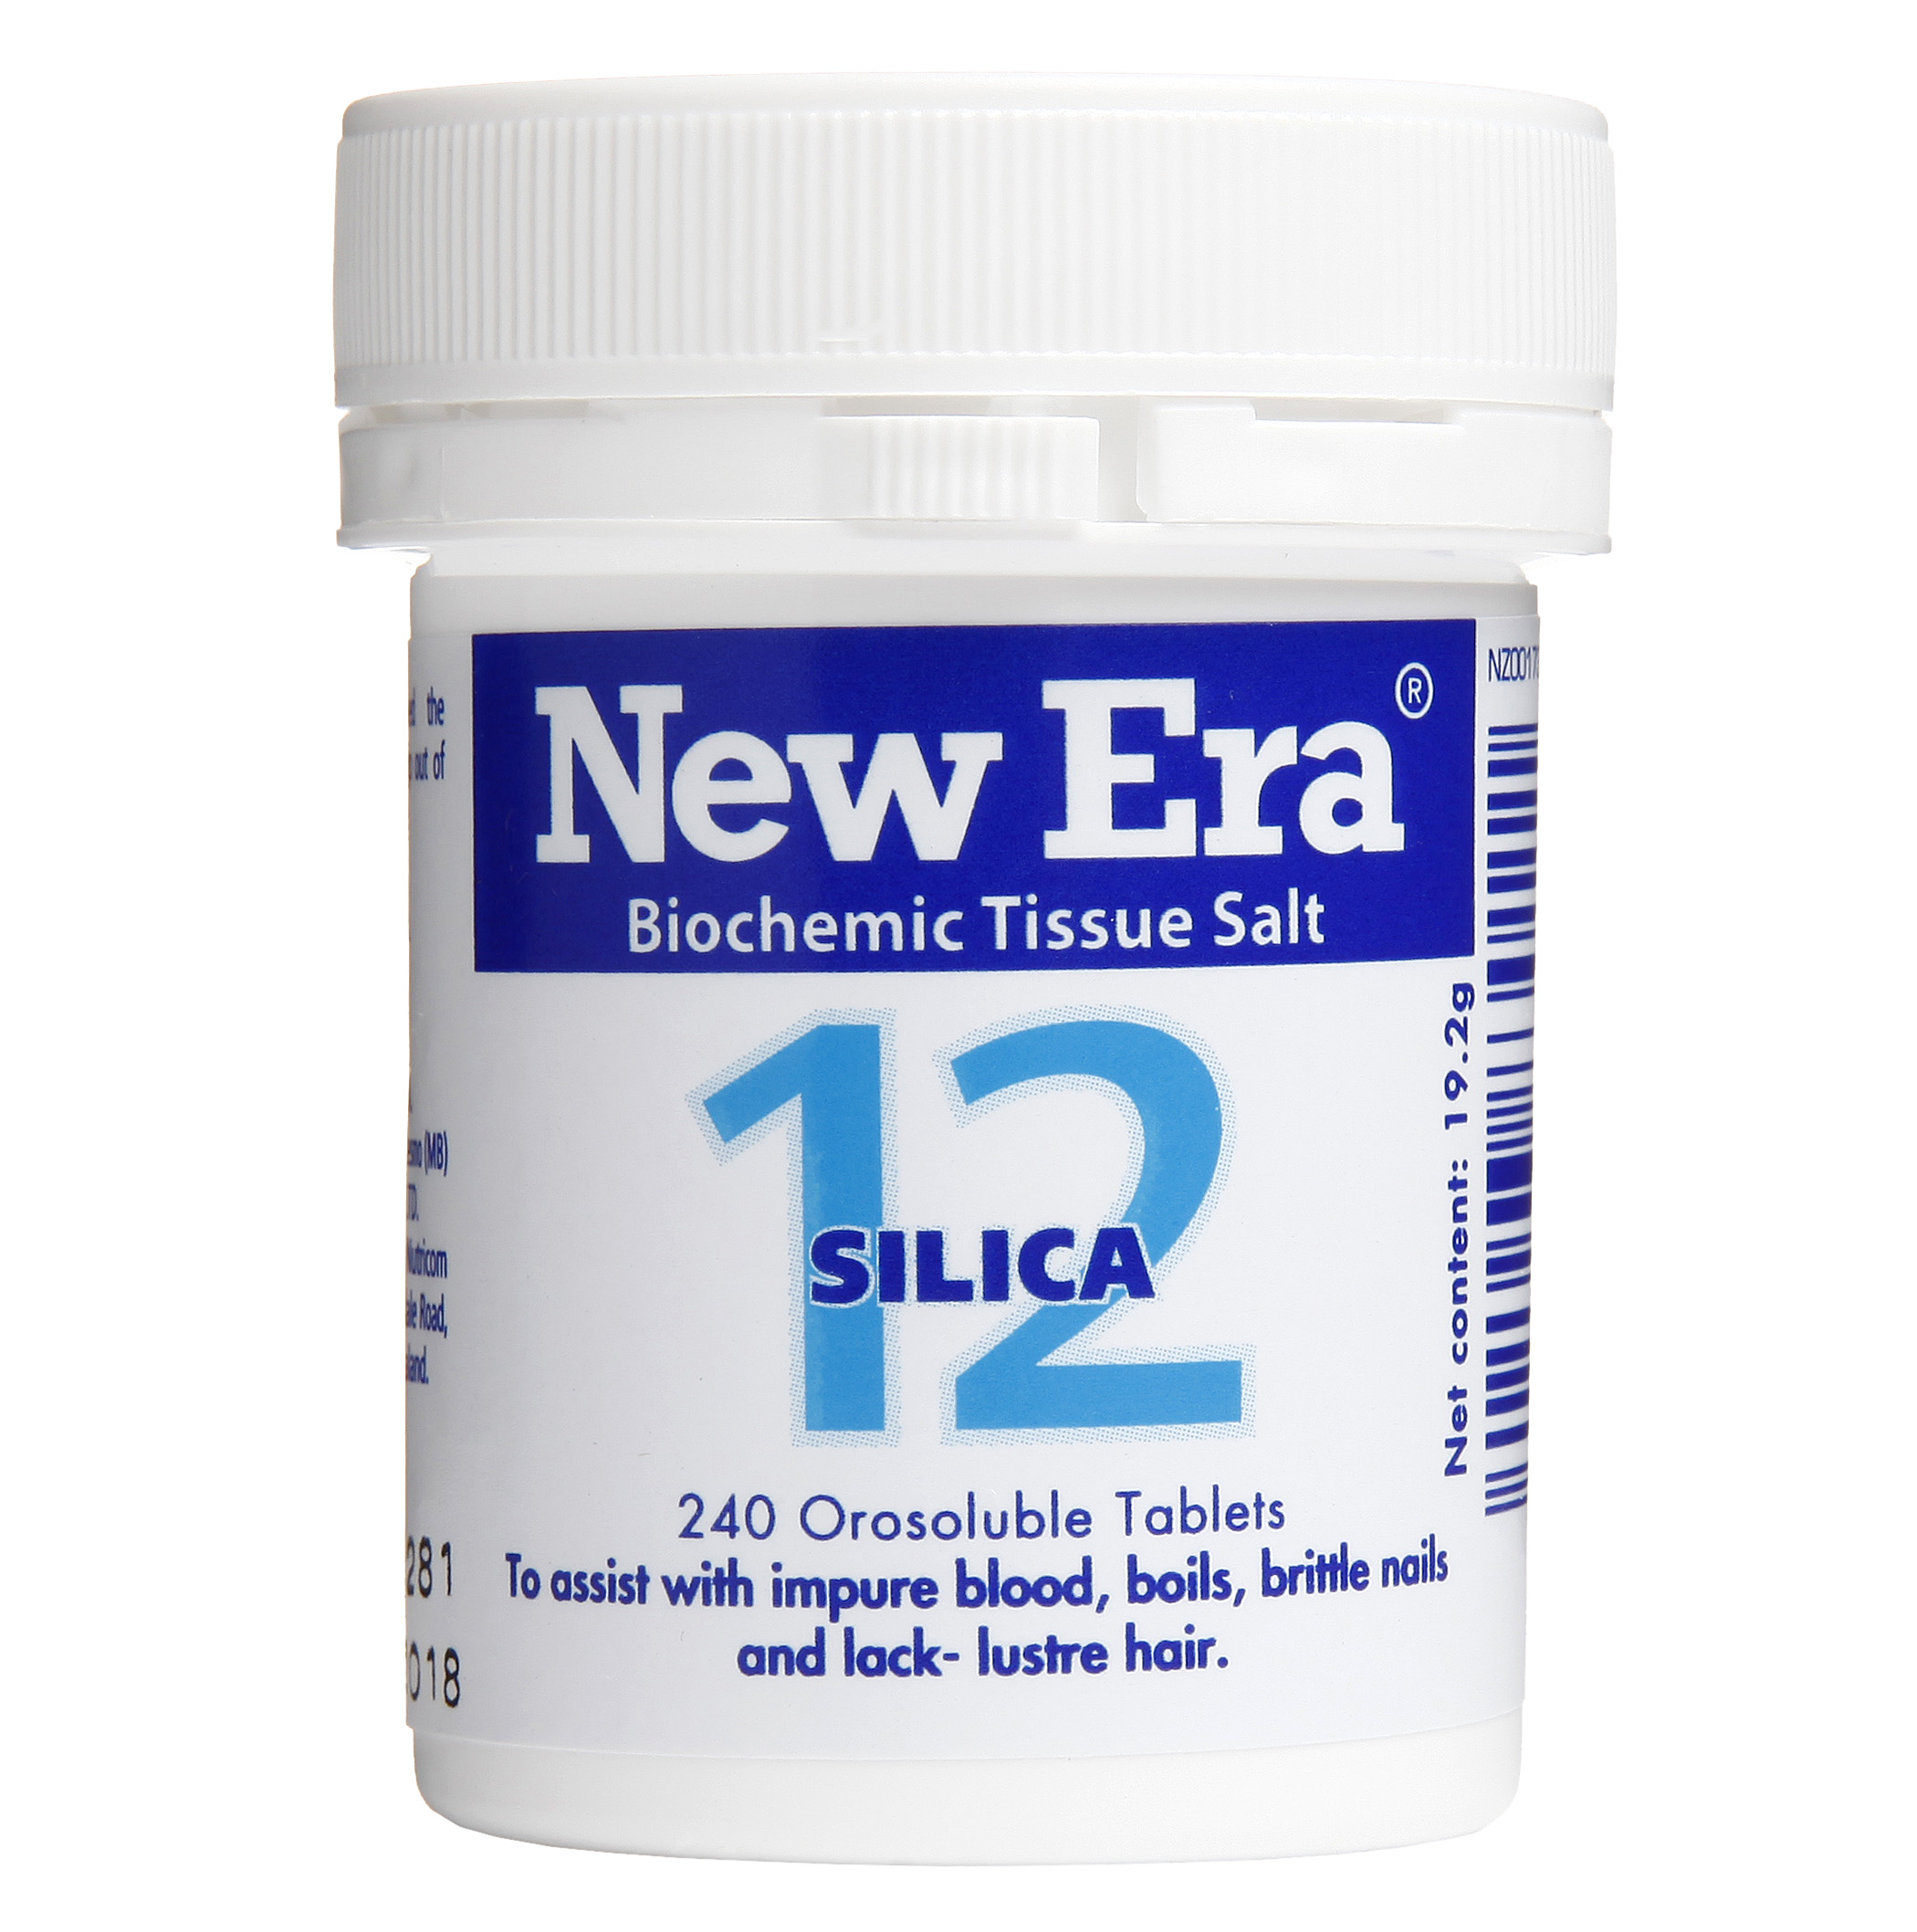 New Era No 12 Silica Mineral Cell Salt